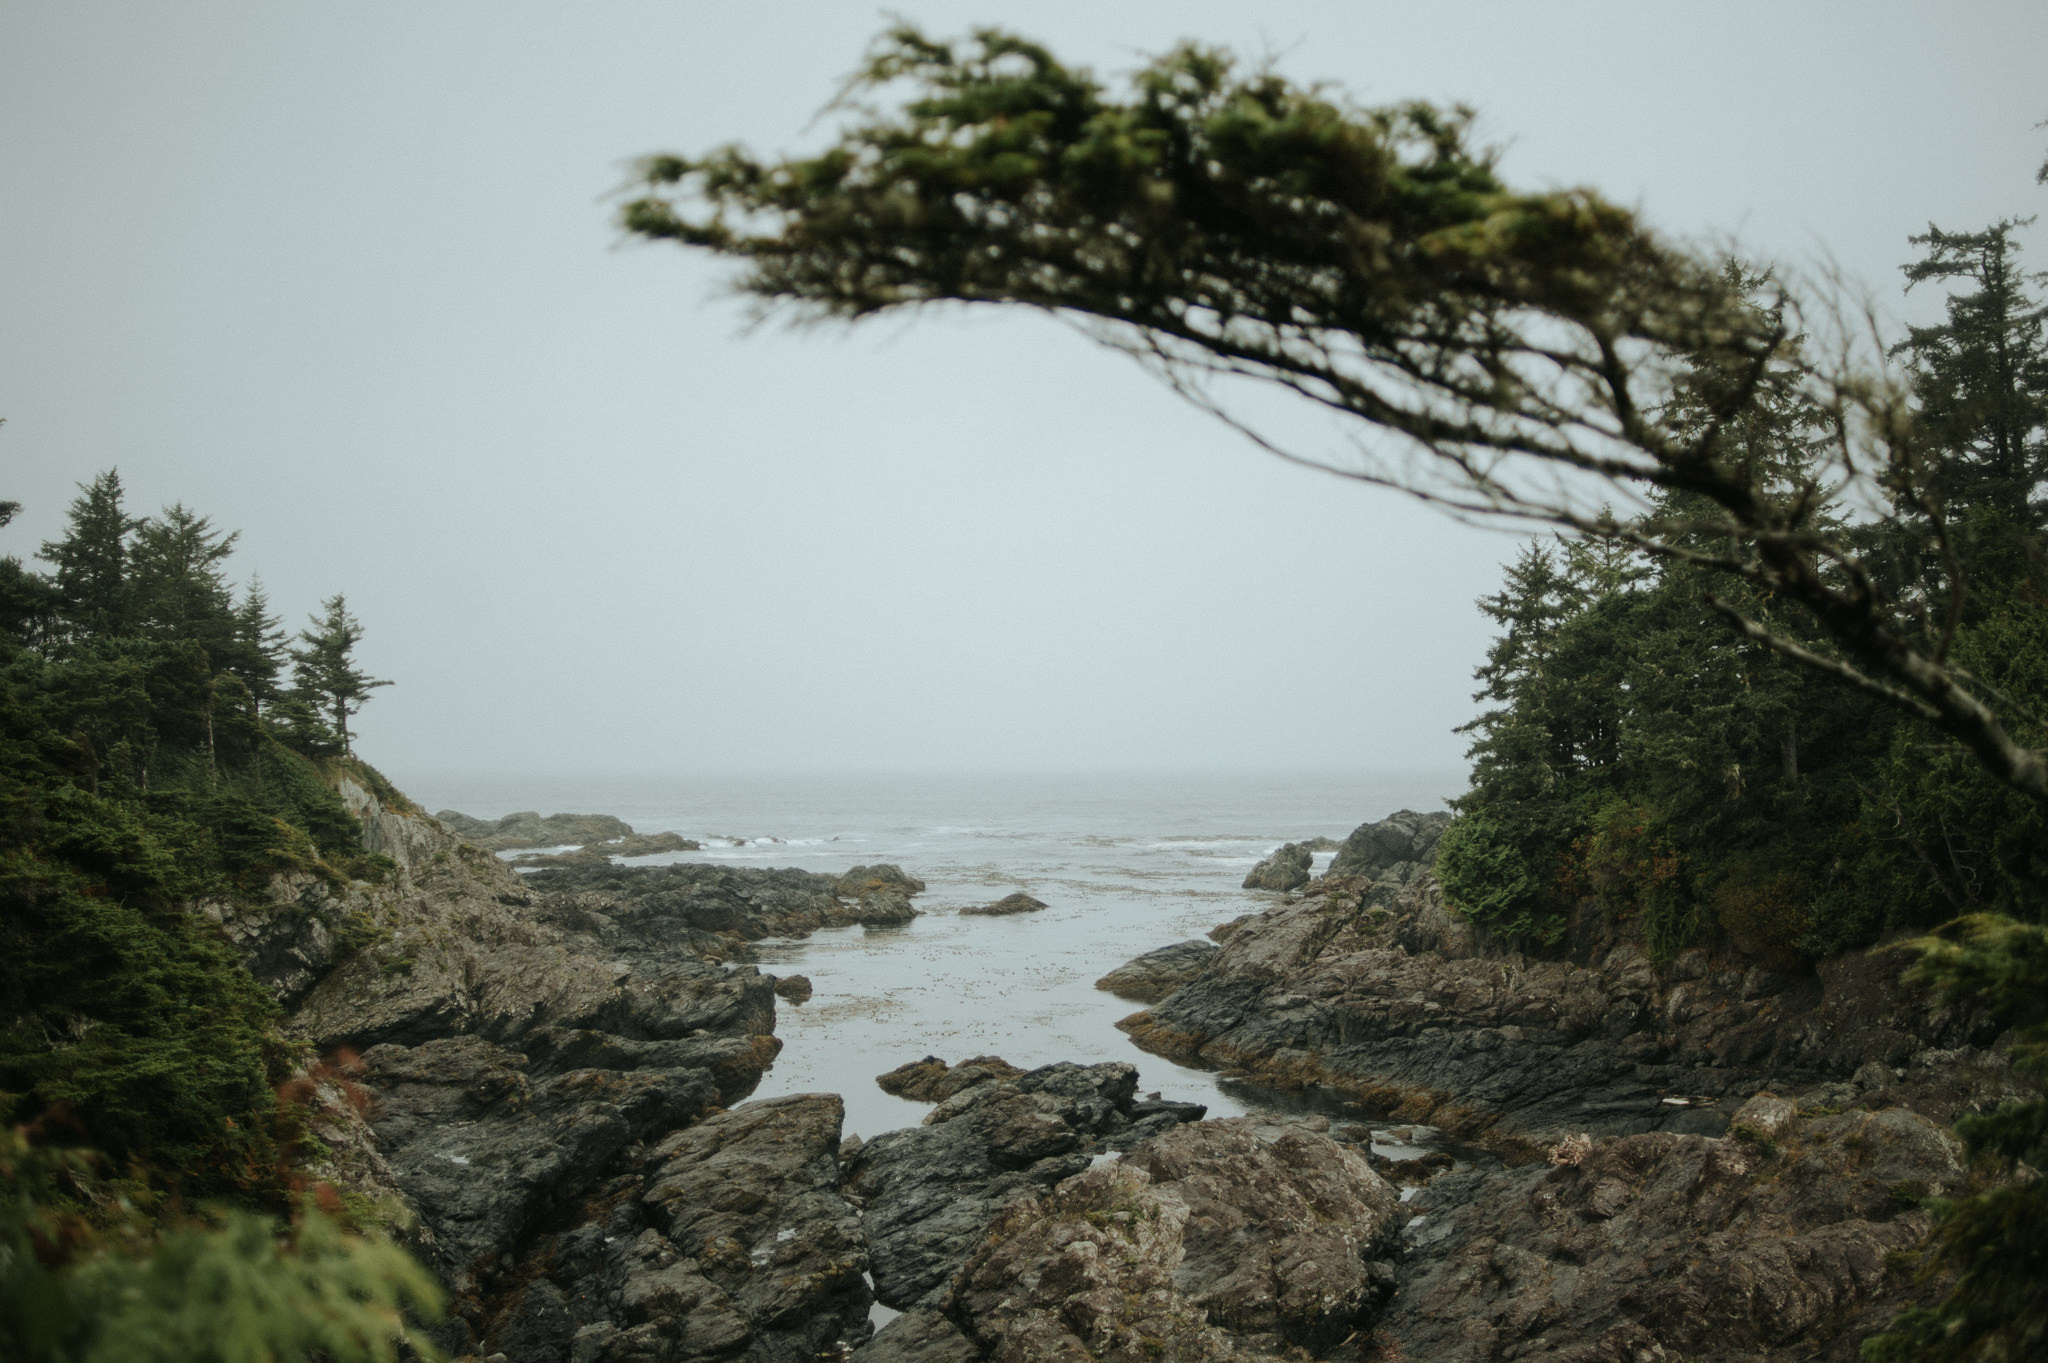 Hiking the Wild Pacific Trail in Ucluelet, BC // Daring Wanderer: www.daringwanderer.com